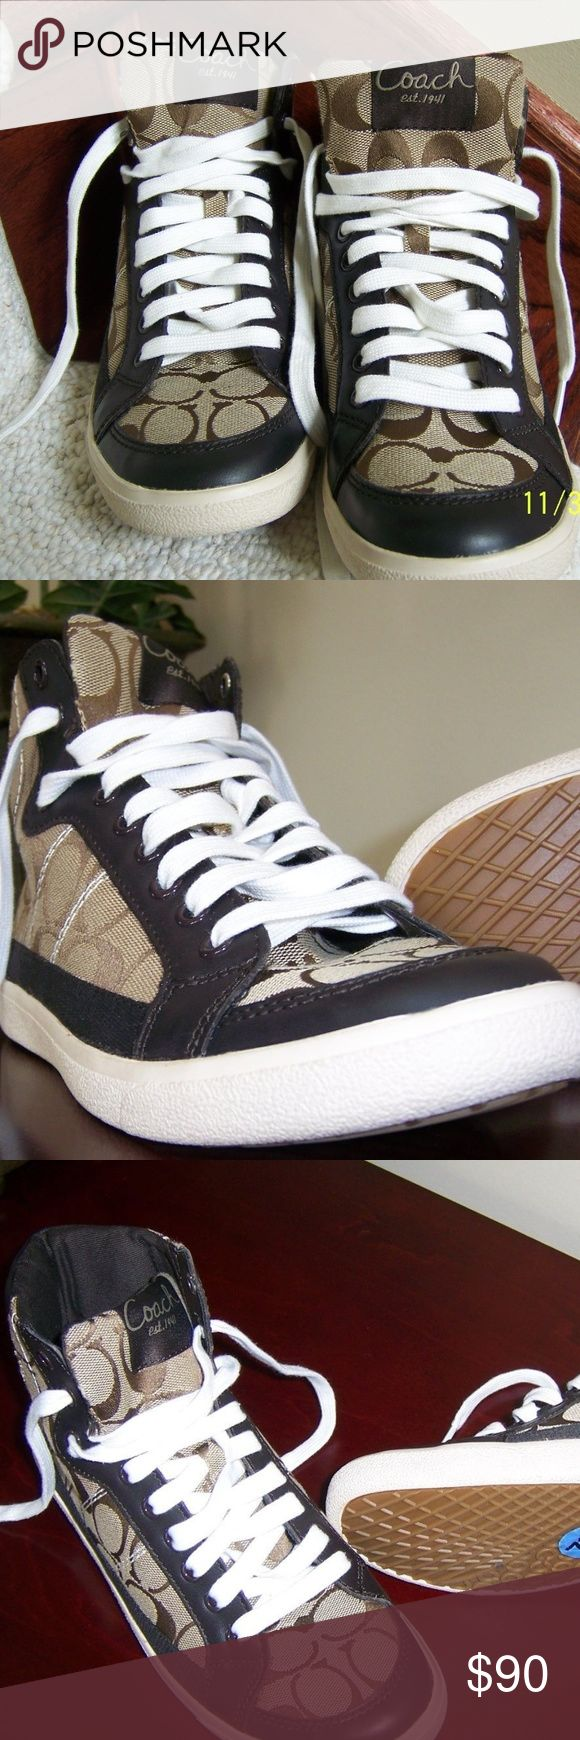 Coach Signature High-Tops Sneakers Ellis Coach Signature High-Top Sneakers Ellis Signature Coach logo pattern on canvas in tan and brown. Women's Size 7.5 B Medium with).   Women's Size 7.5 B (Medium width). Brown leather trim with light cream laces with brown grommets. Cream border soles and natural color bottoms , and non slip pattern soles. Excellent walking, sport playing or up town shoe! Coach Shoes Ankle Boots & Booties